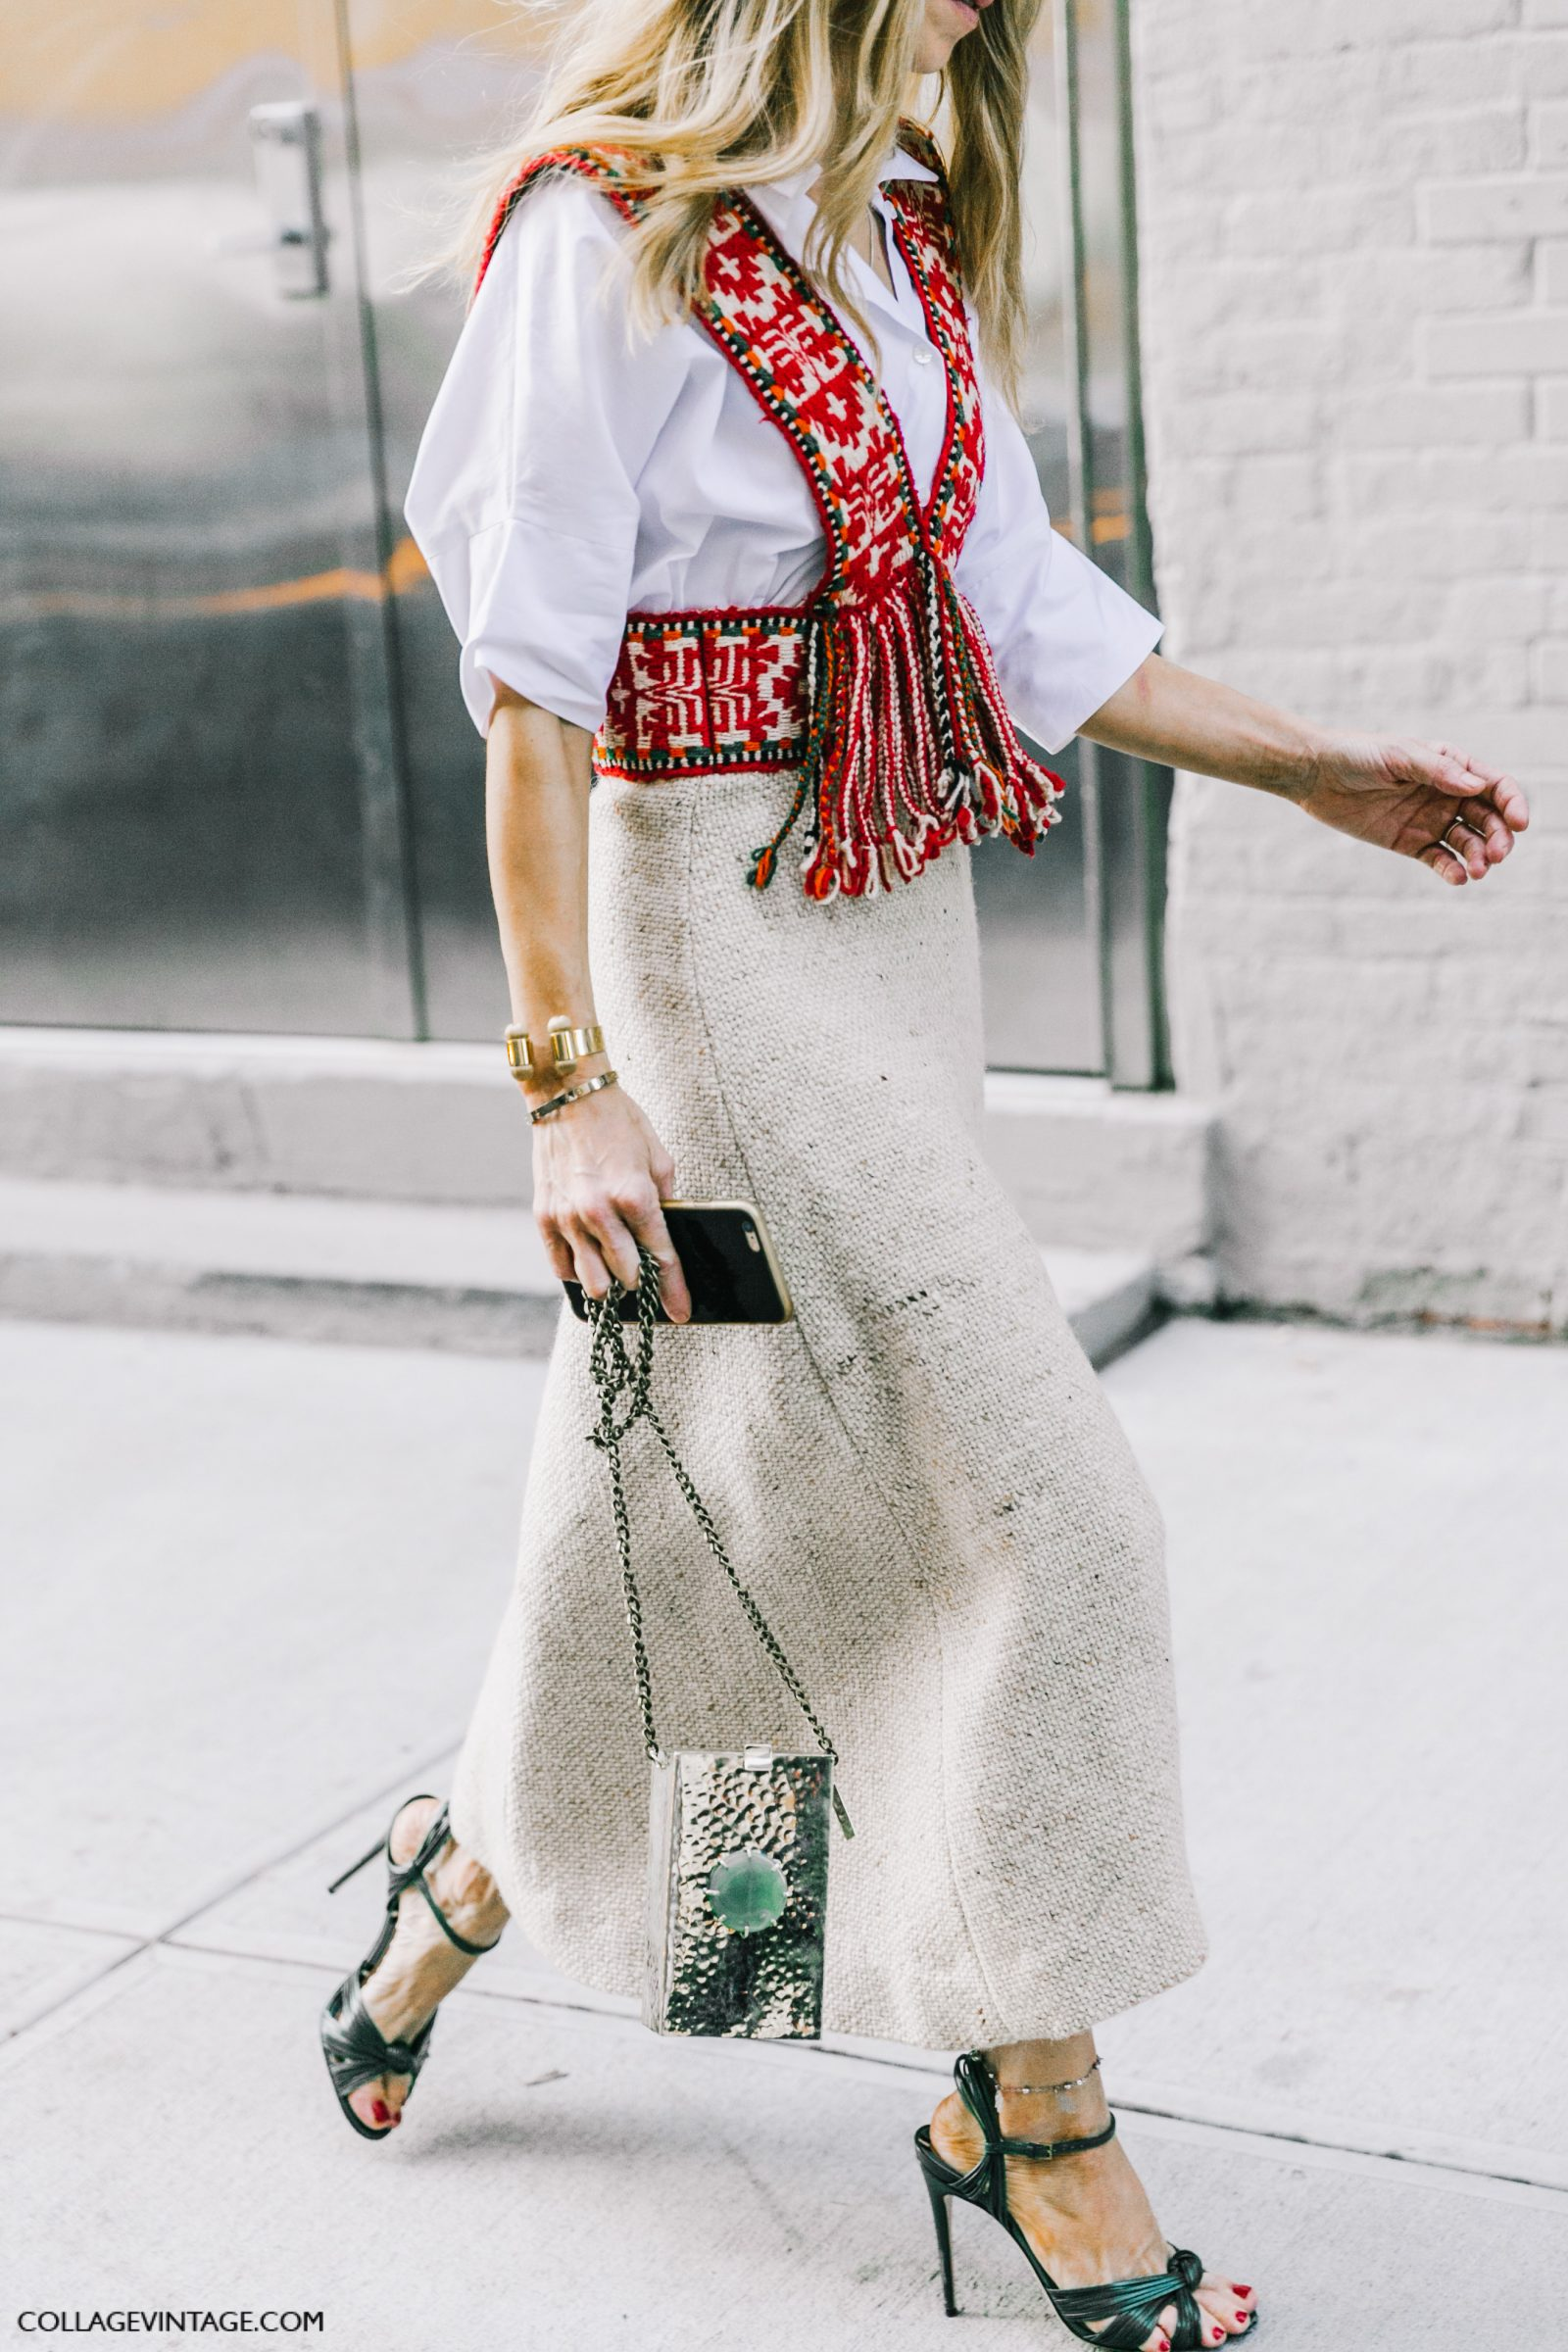 nyfw-new_york_fashion_week_ss17-street_style-outfits-collage_vintage-vintage-mansur_gavriel-rodarte-coach-252